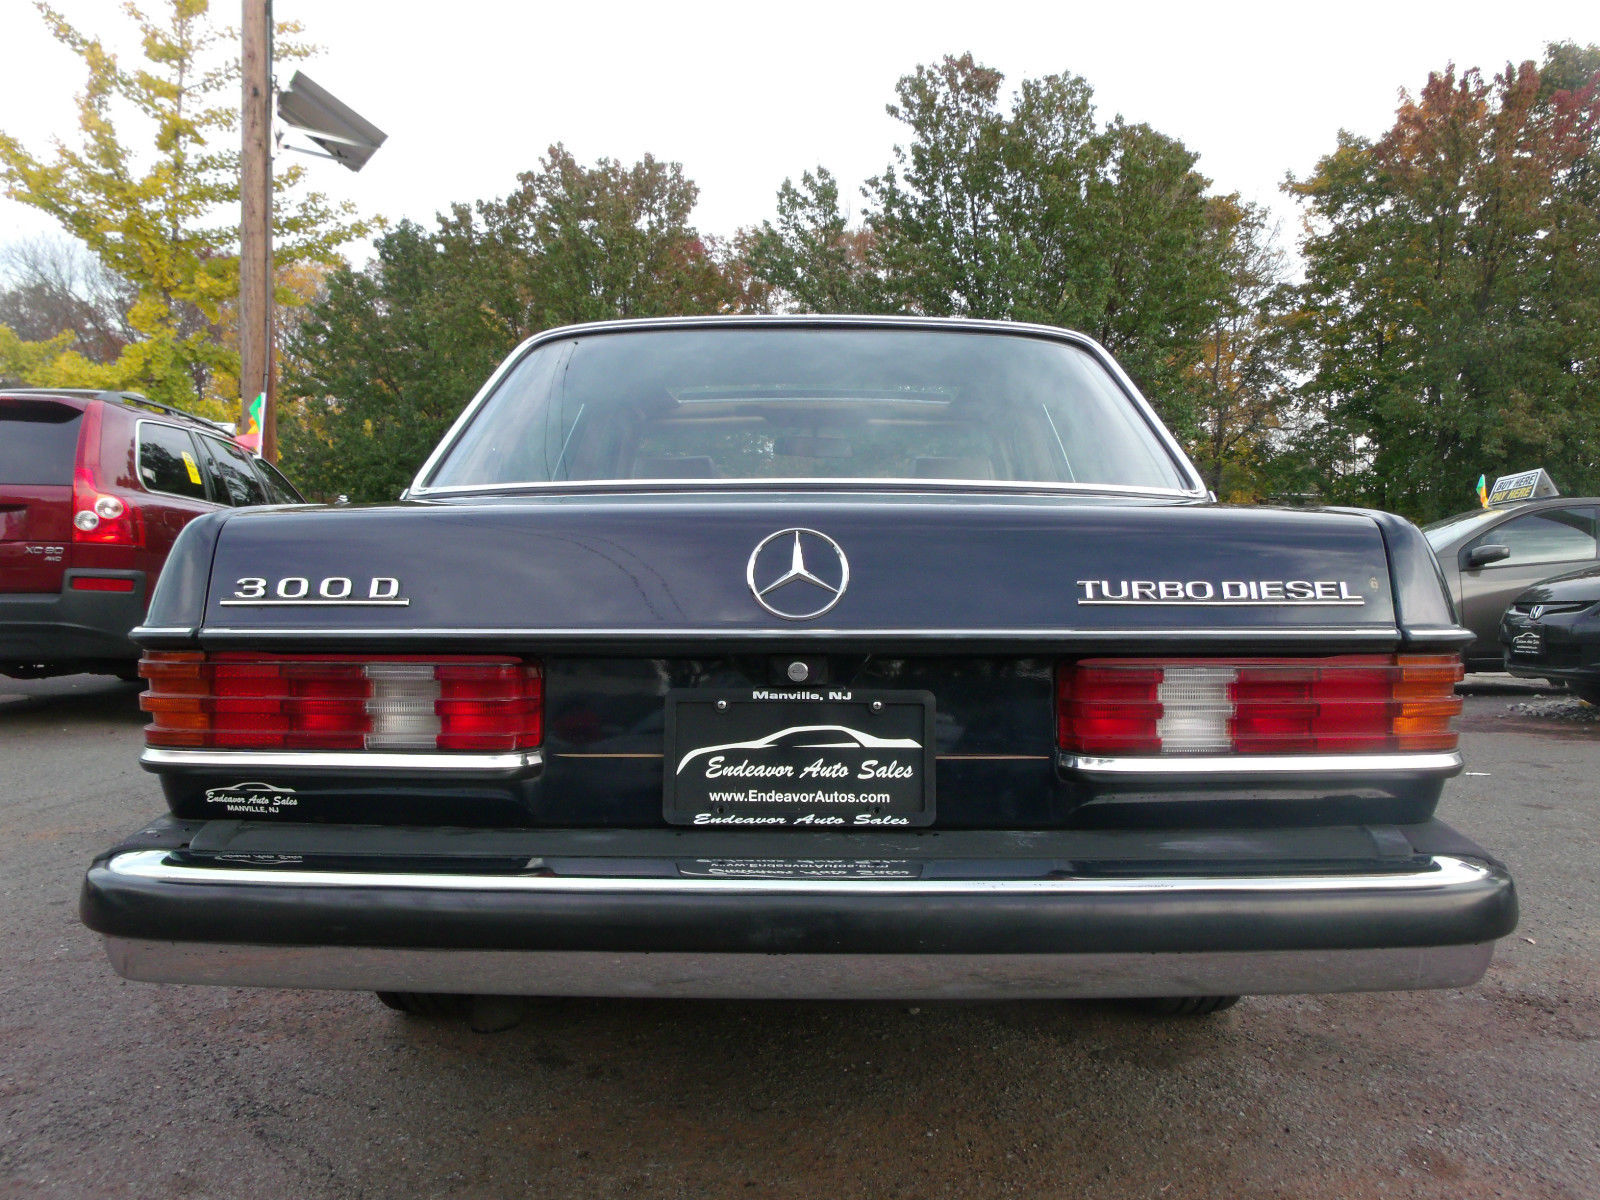 1984 mercedes benz 300d turbo diesel clean interior for Mercedes benz 300 diesel